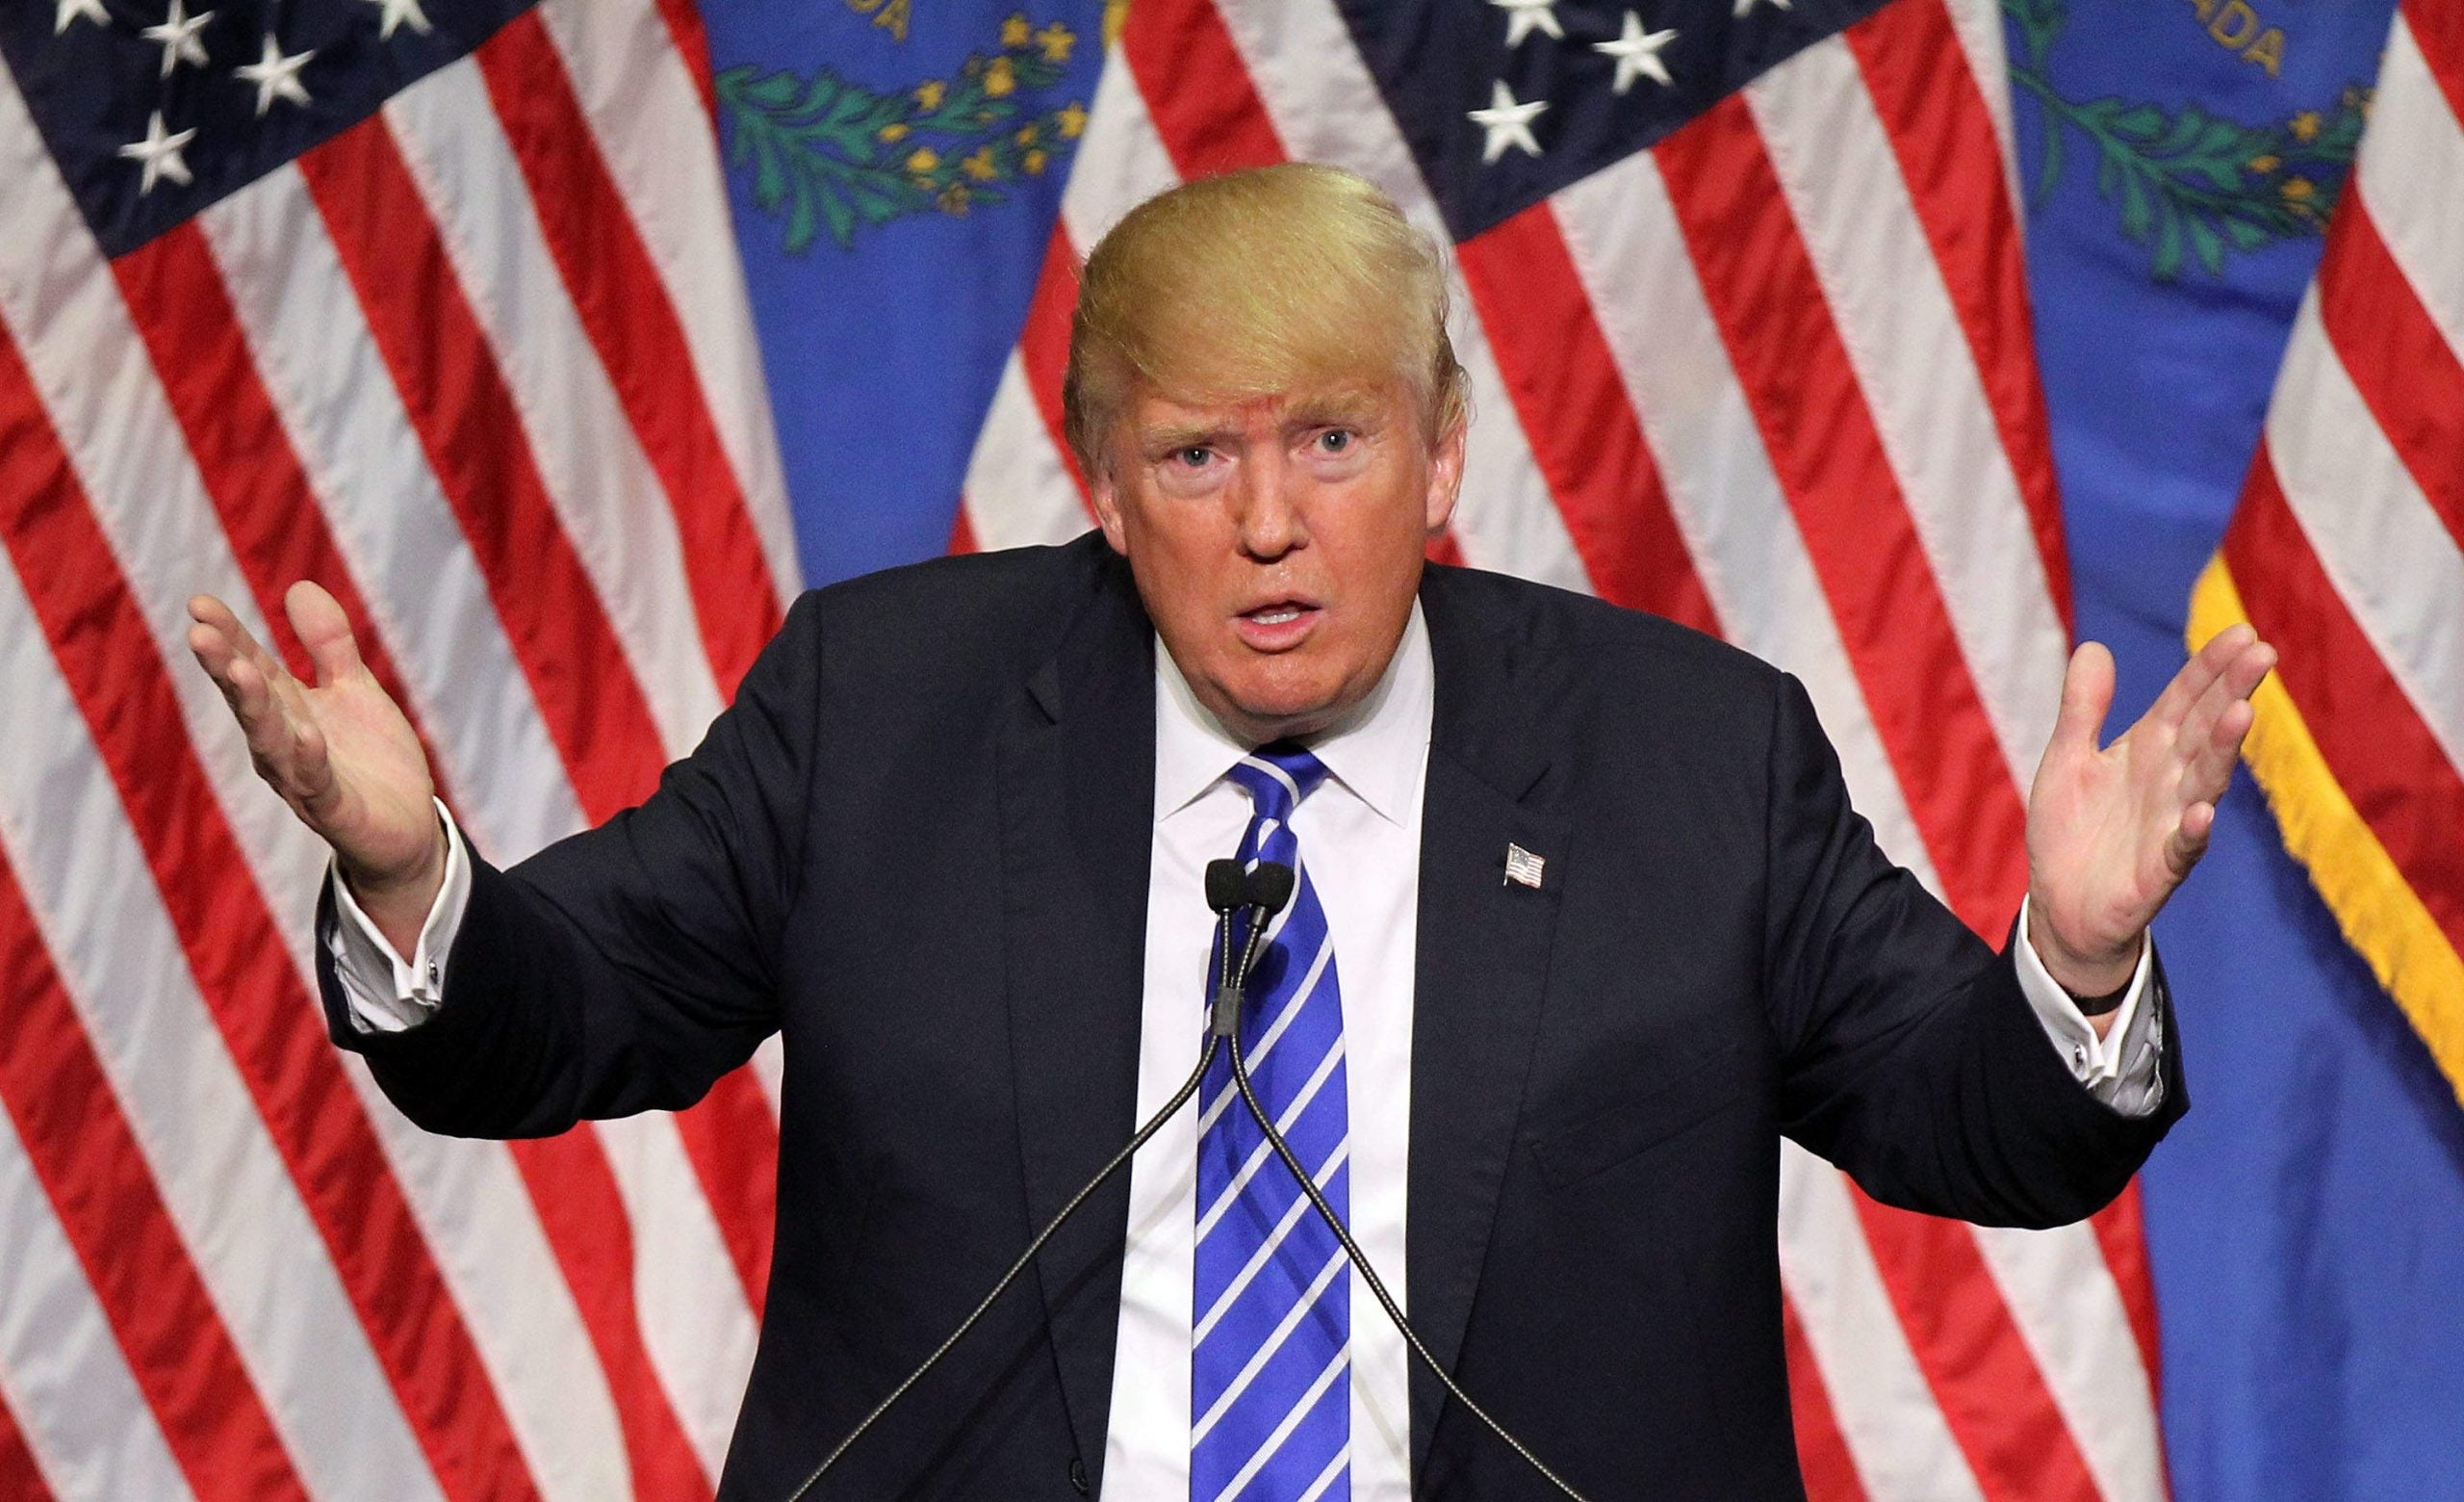 Donald Trump savages the media but without their fawning he would not be president